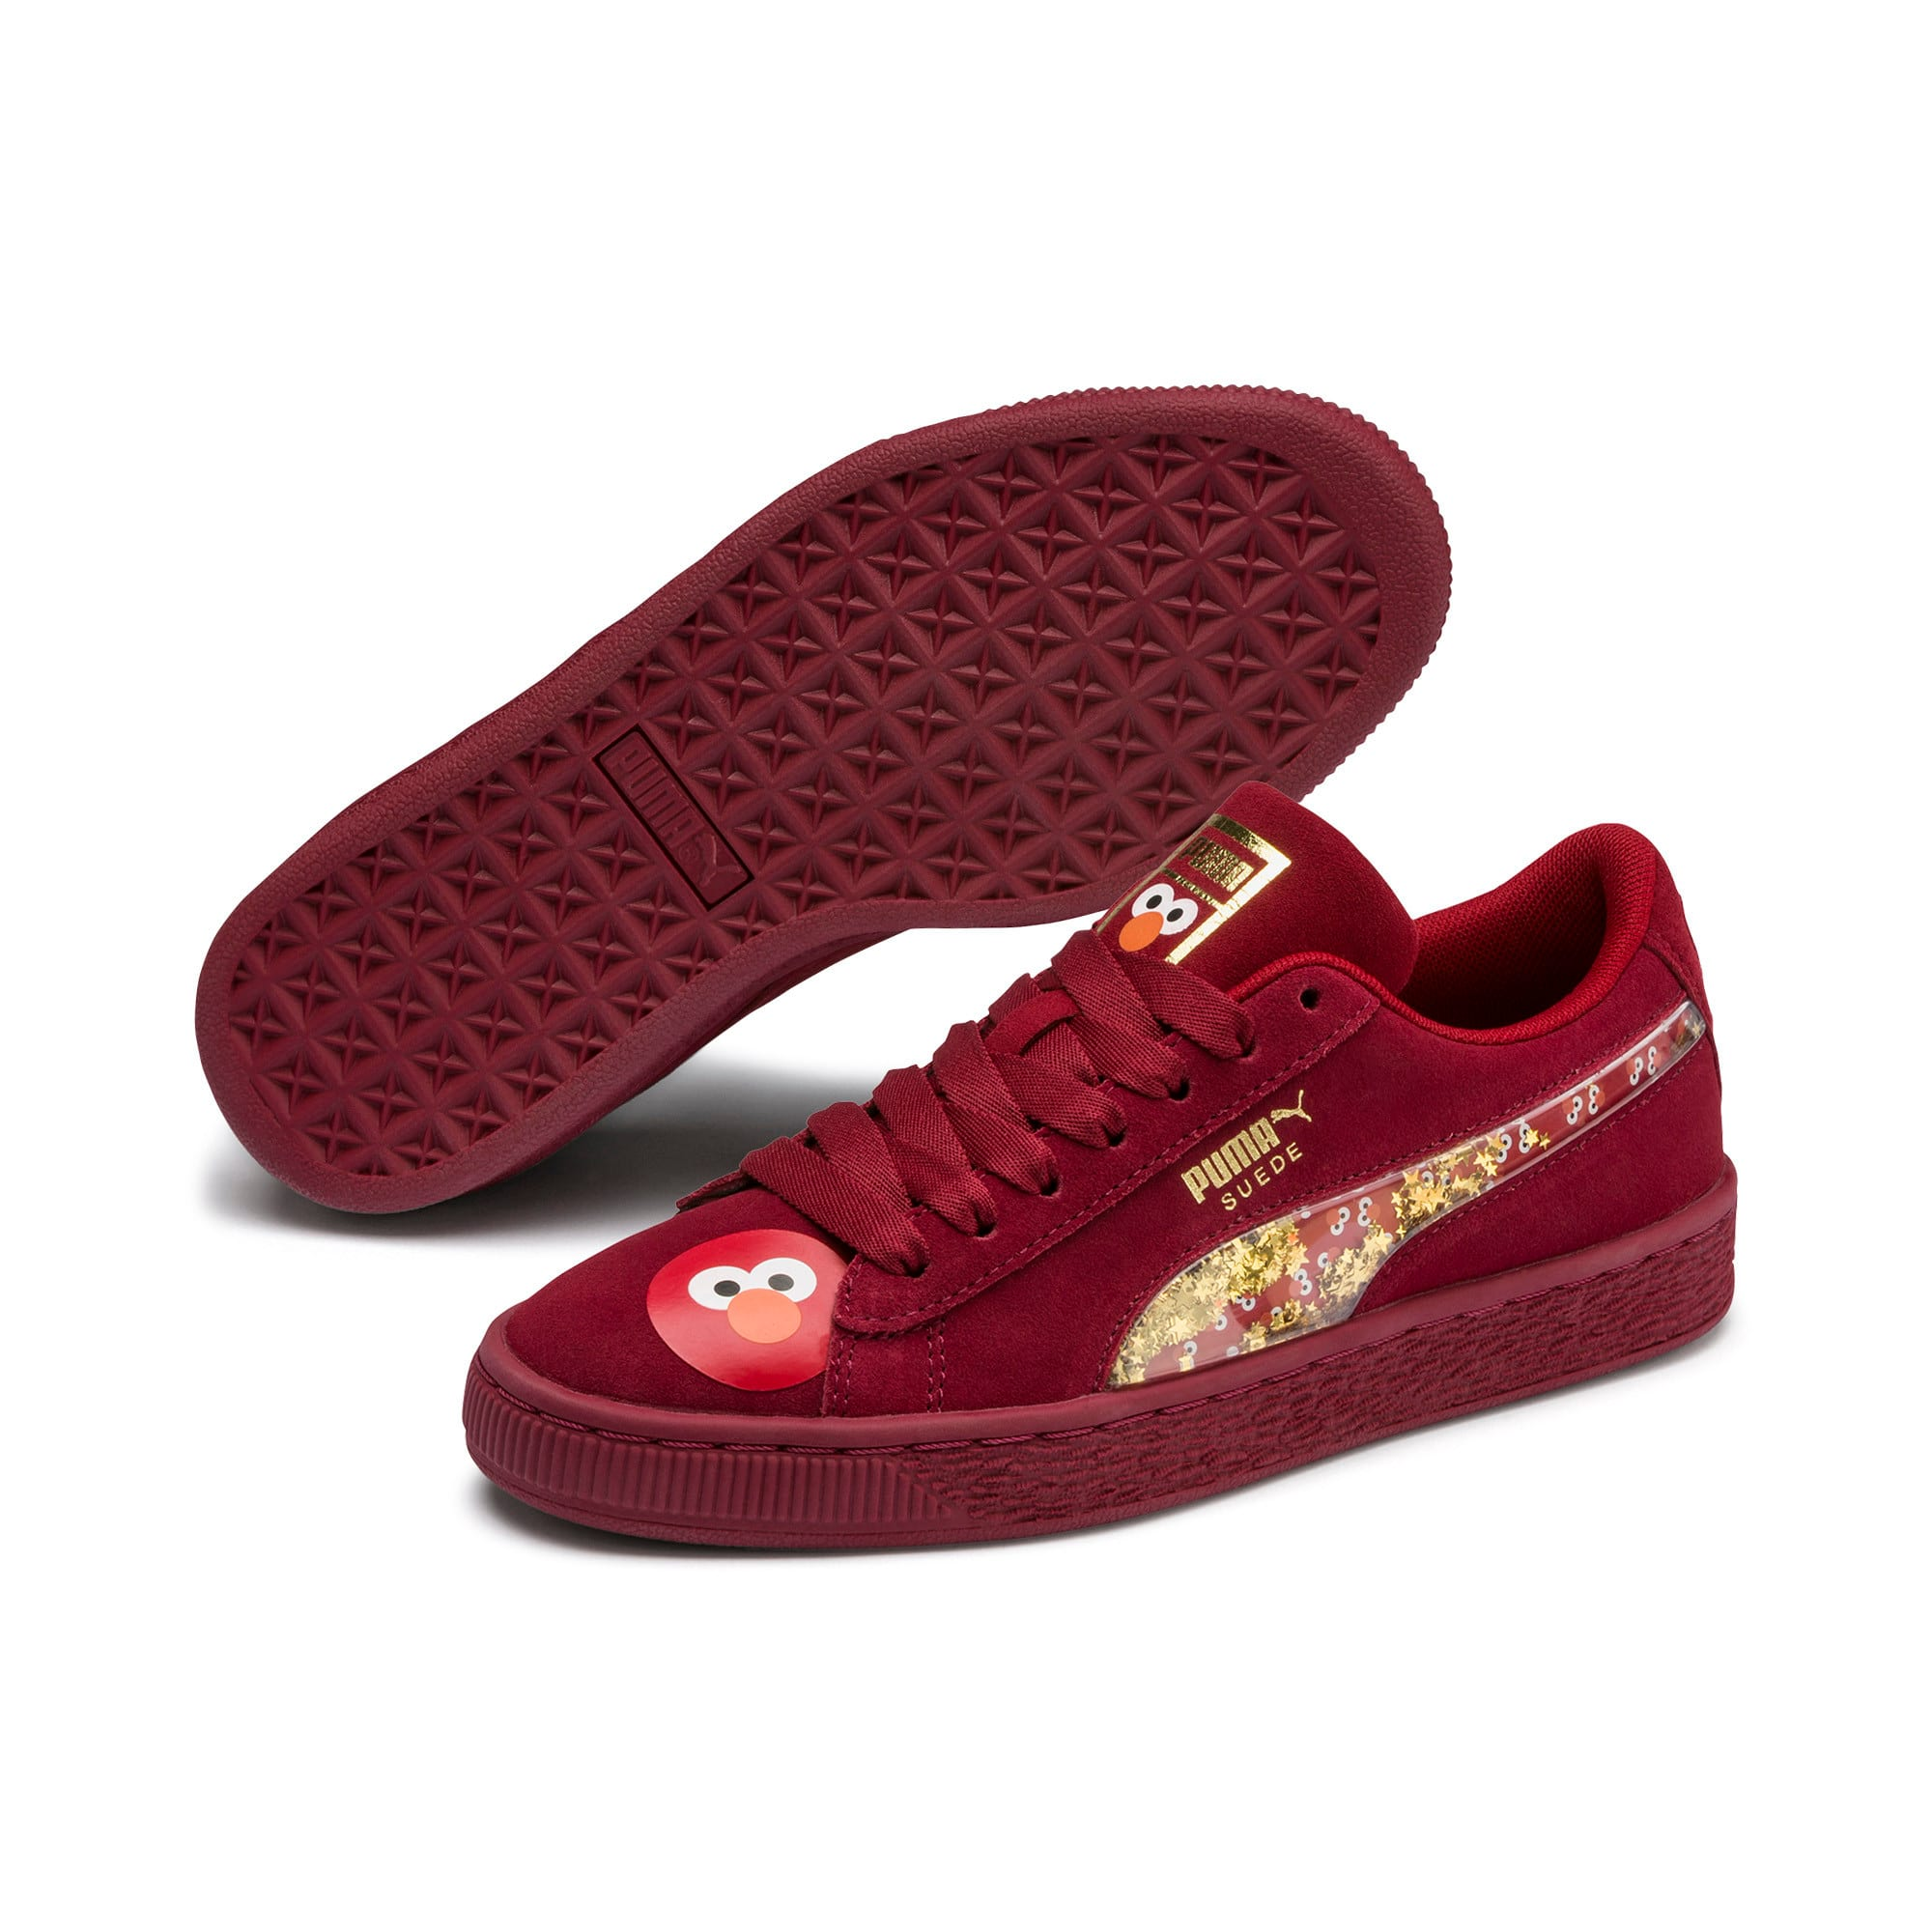 Thumbnail 2 of Sesame Street 50 Suede Statement Youth Trainers, Rhubarb-Puma White, medium